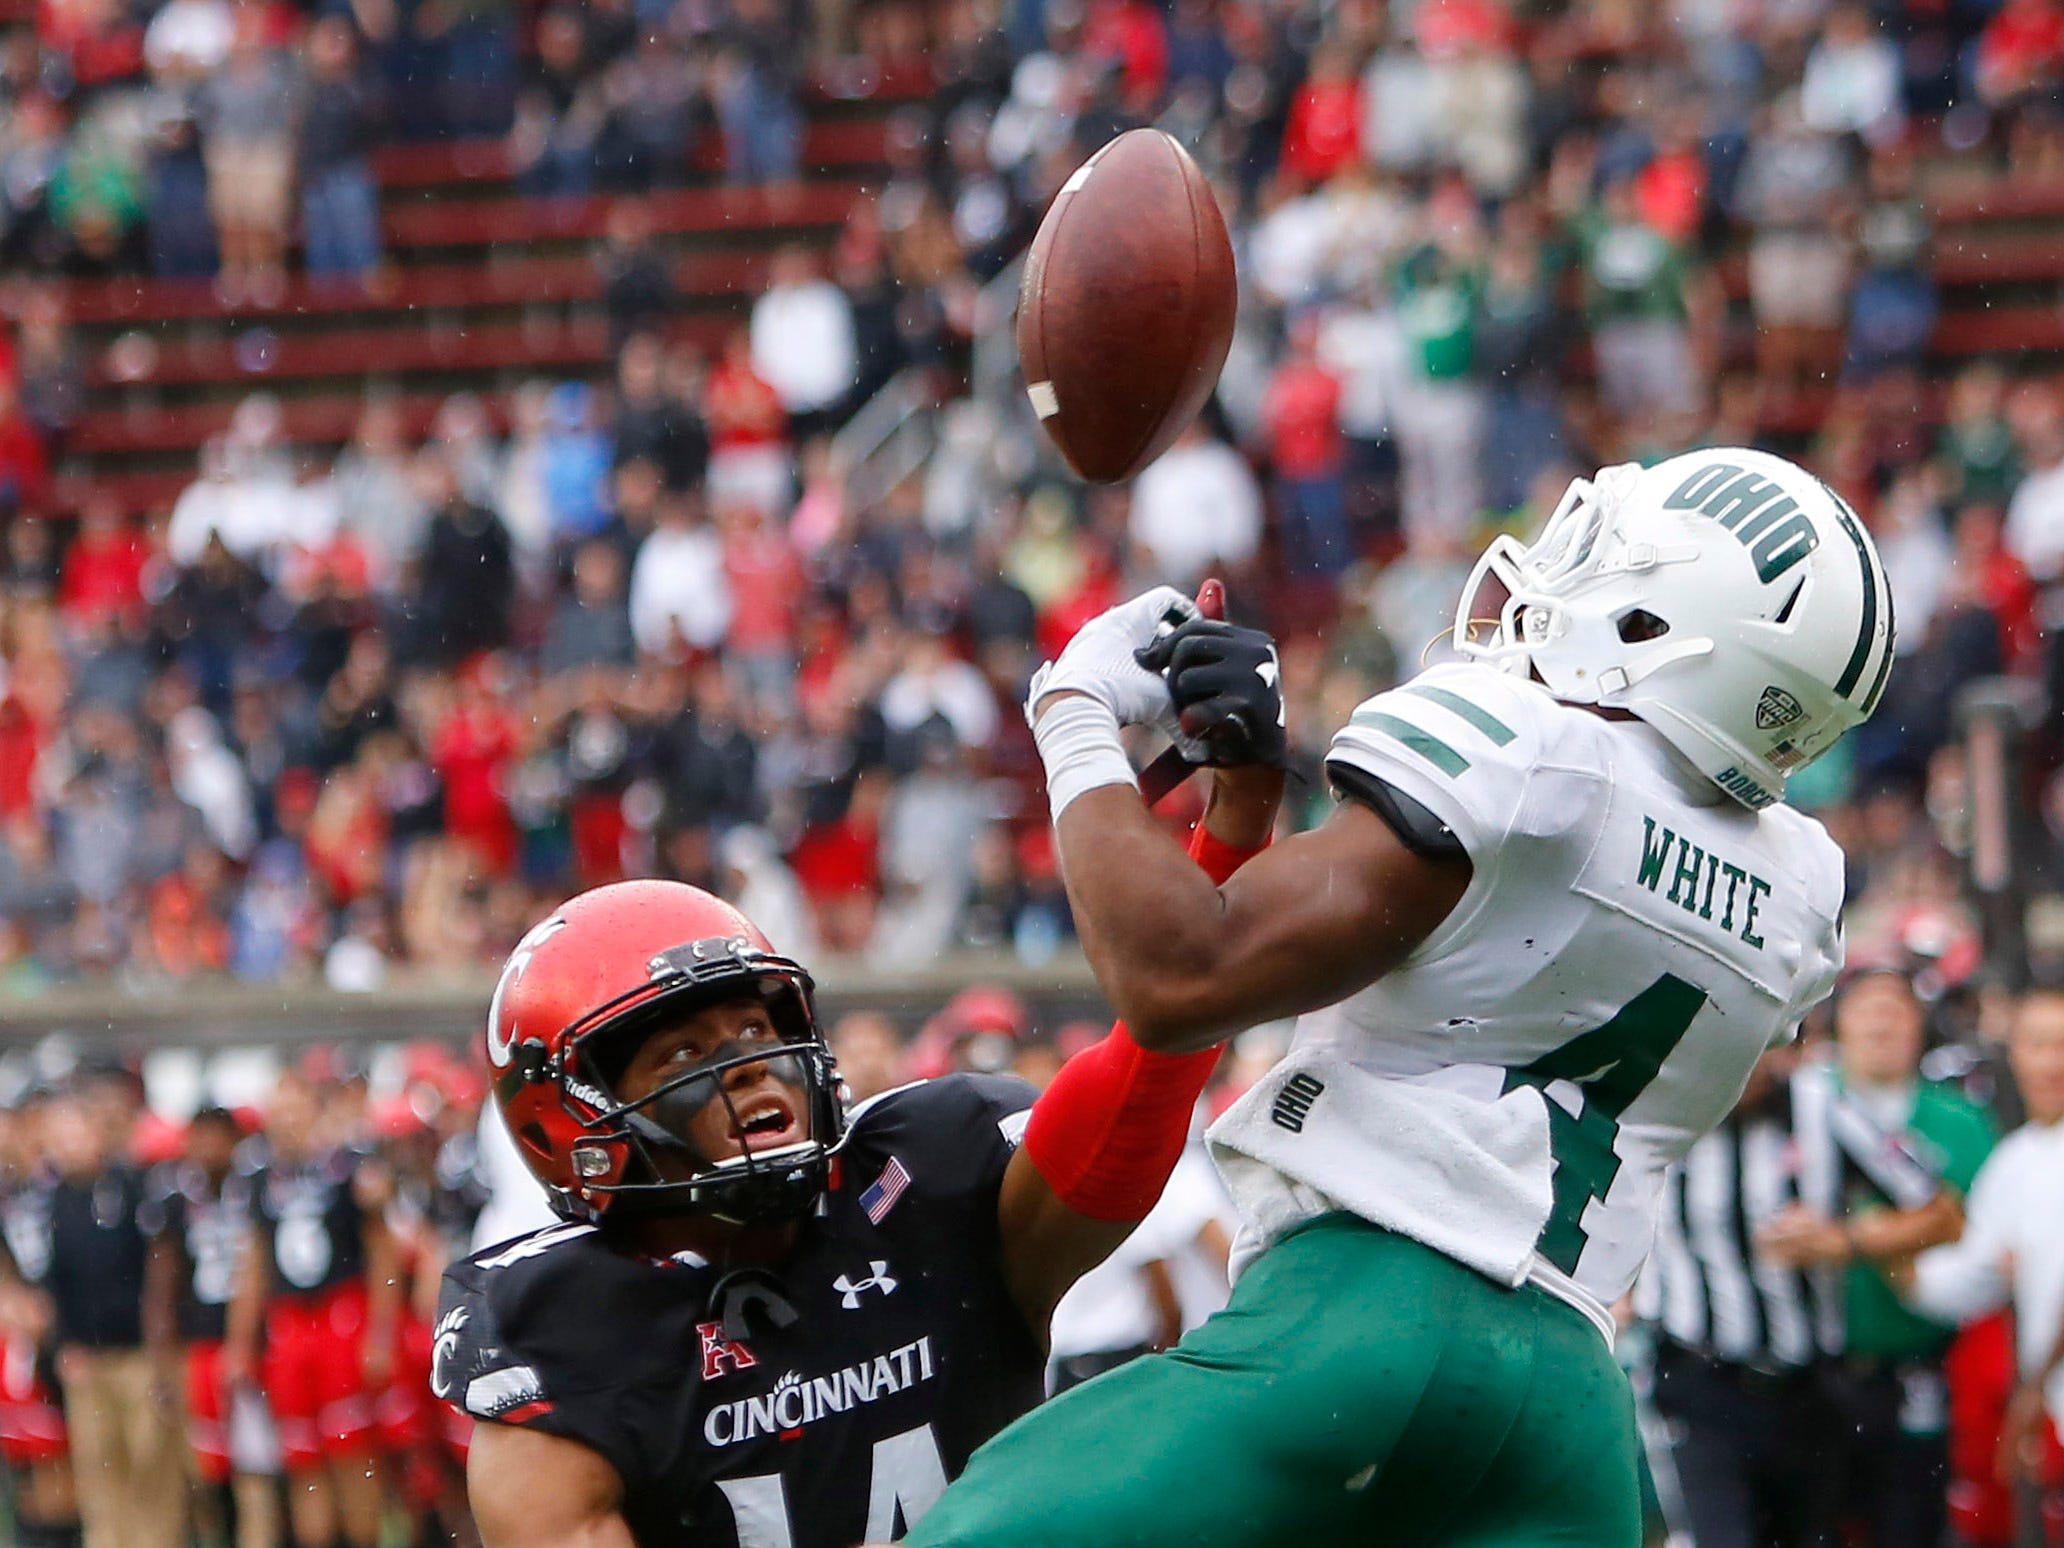 Cincinnati Bearcats cornerback Cameron Jefferies (14) breaks up a pass against Ohio Bobcats cornerback Jamal Hudson (4) during the second half at Nippert Stadium.